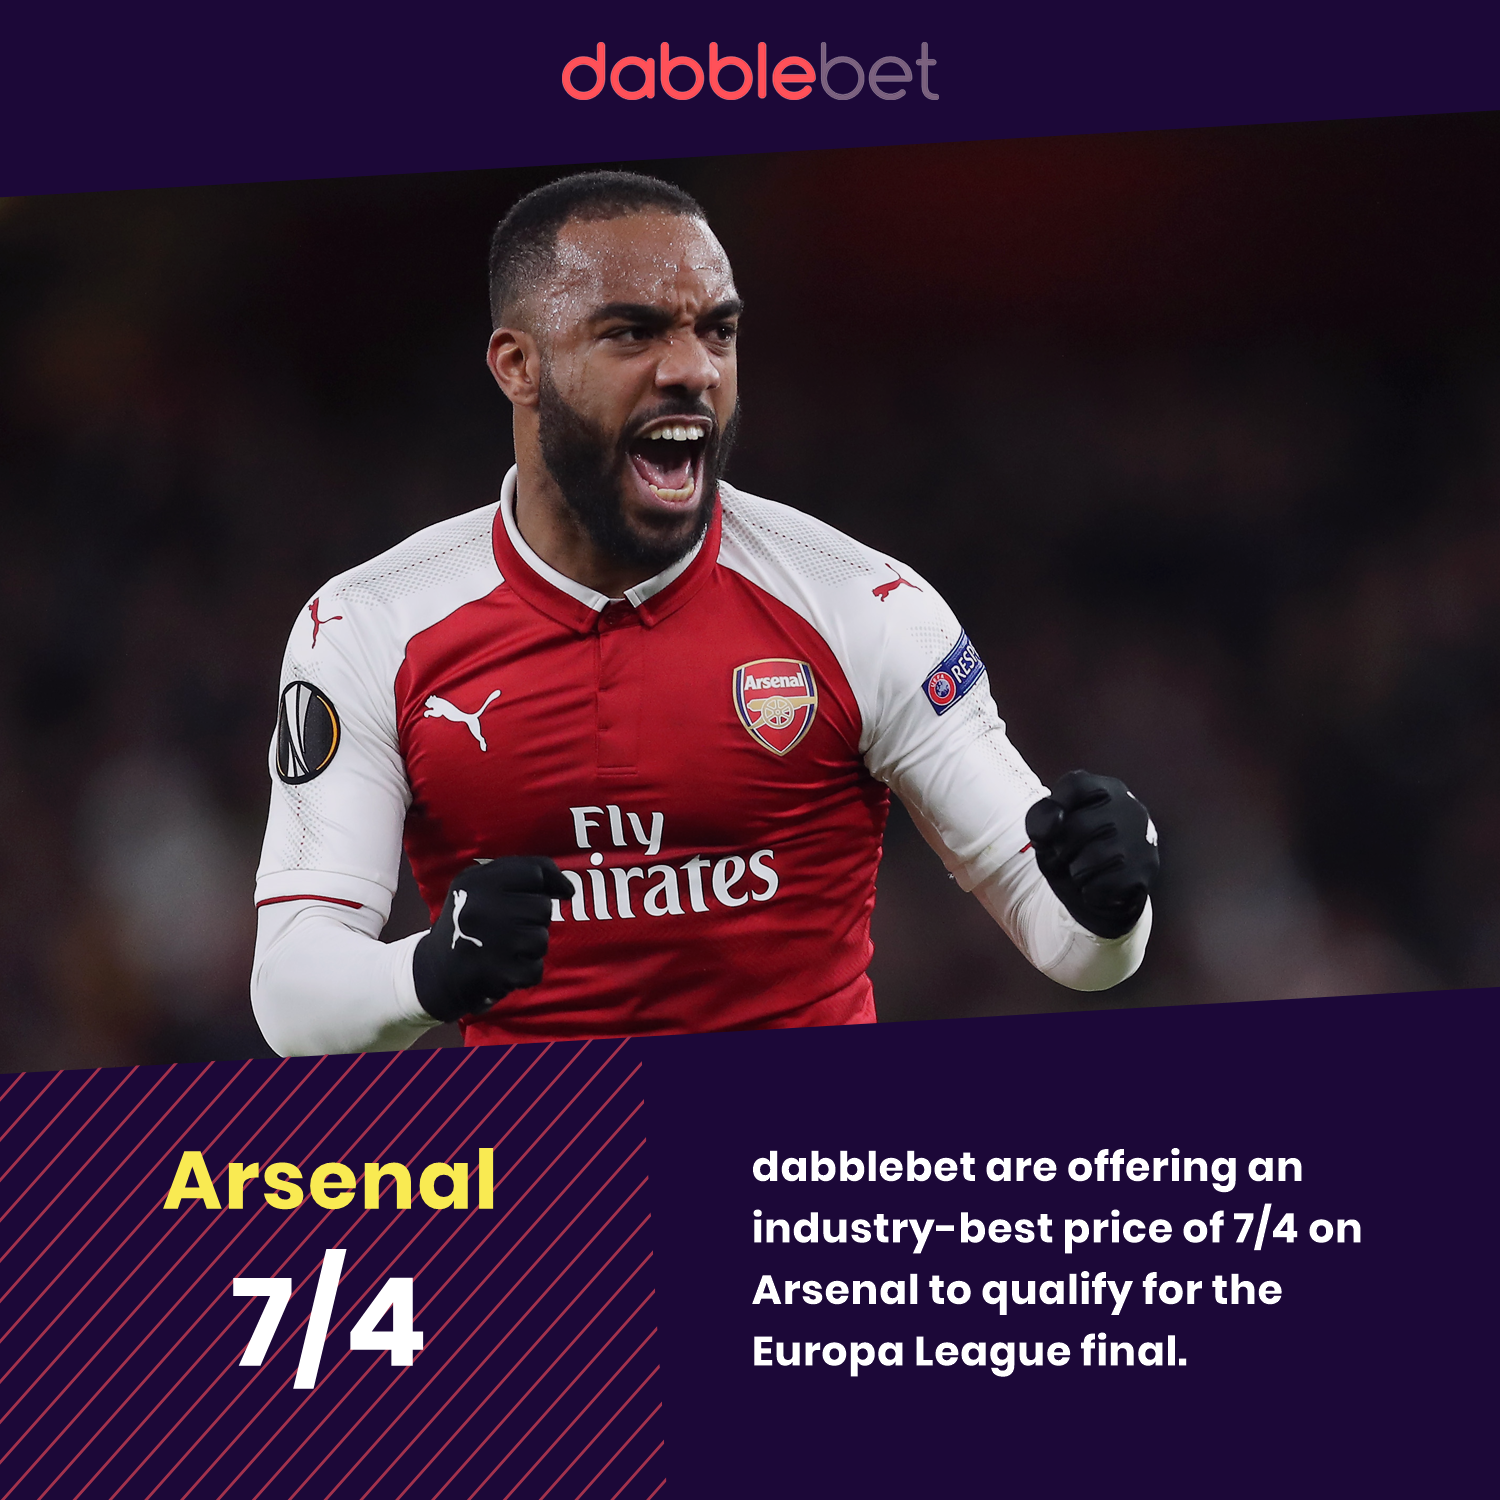 dabblebet enhanced odds Arsenal to qualify